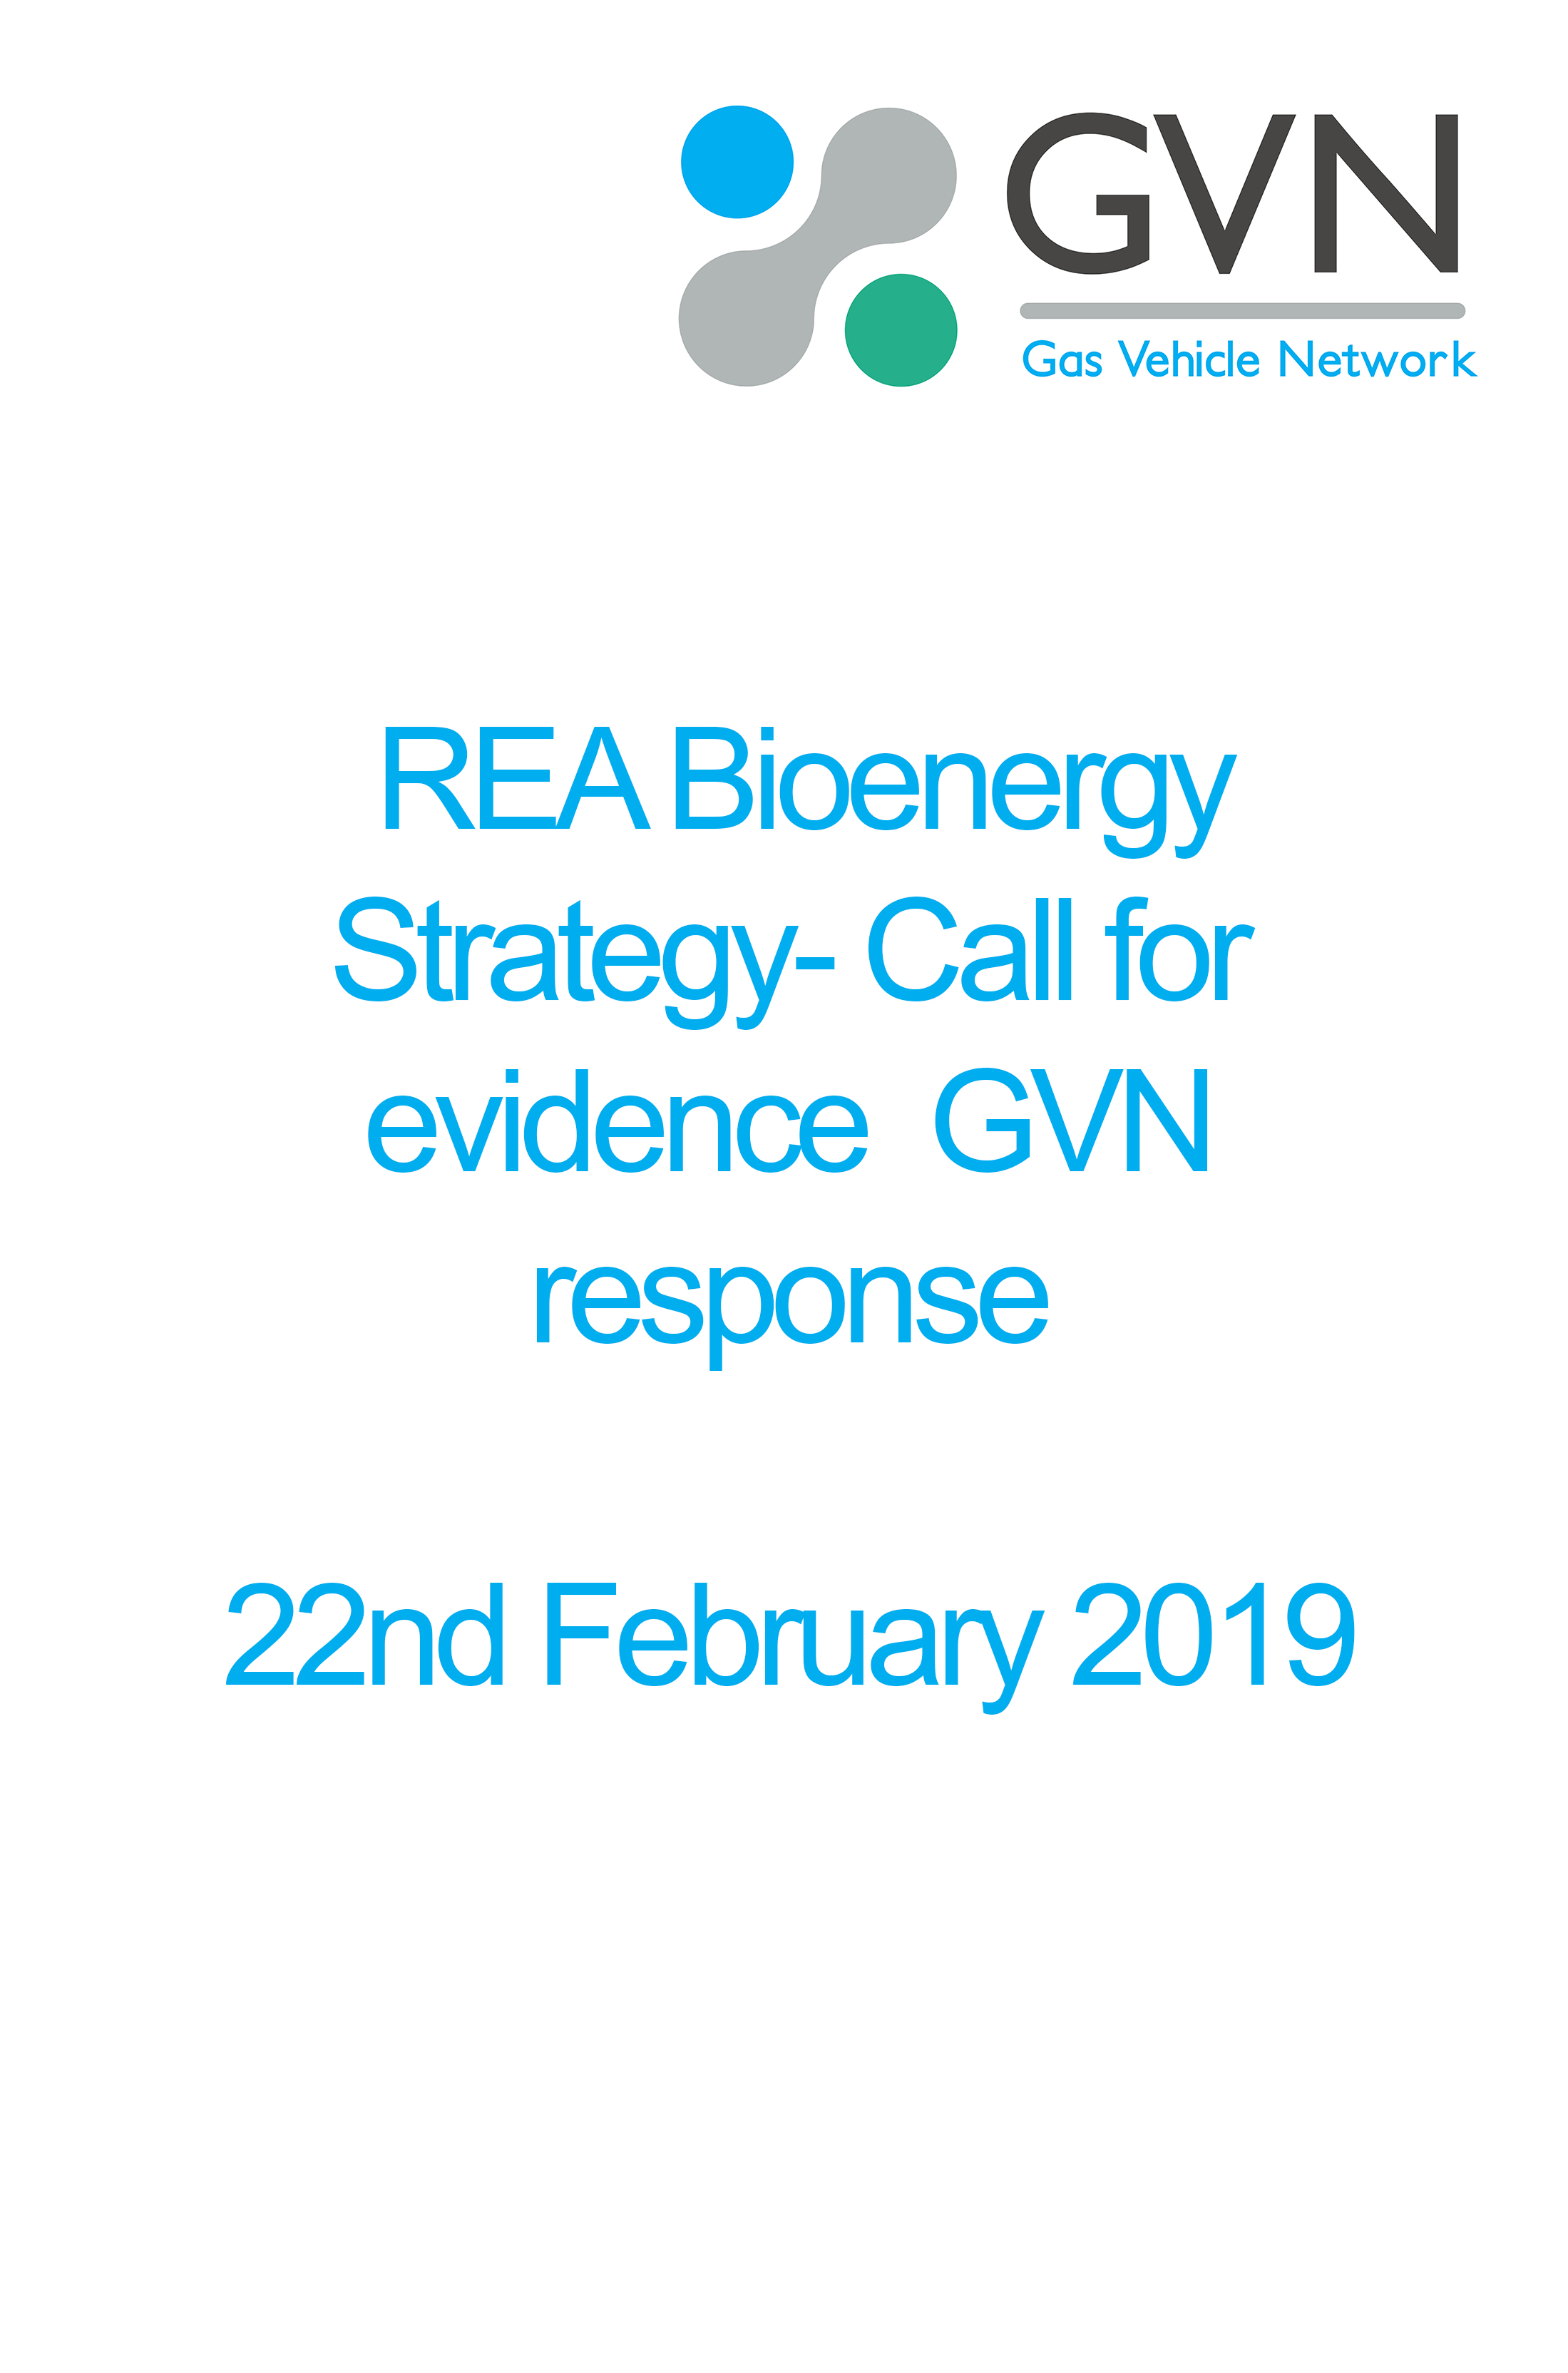 REA Bioenergy Strategy-Call for evidence